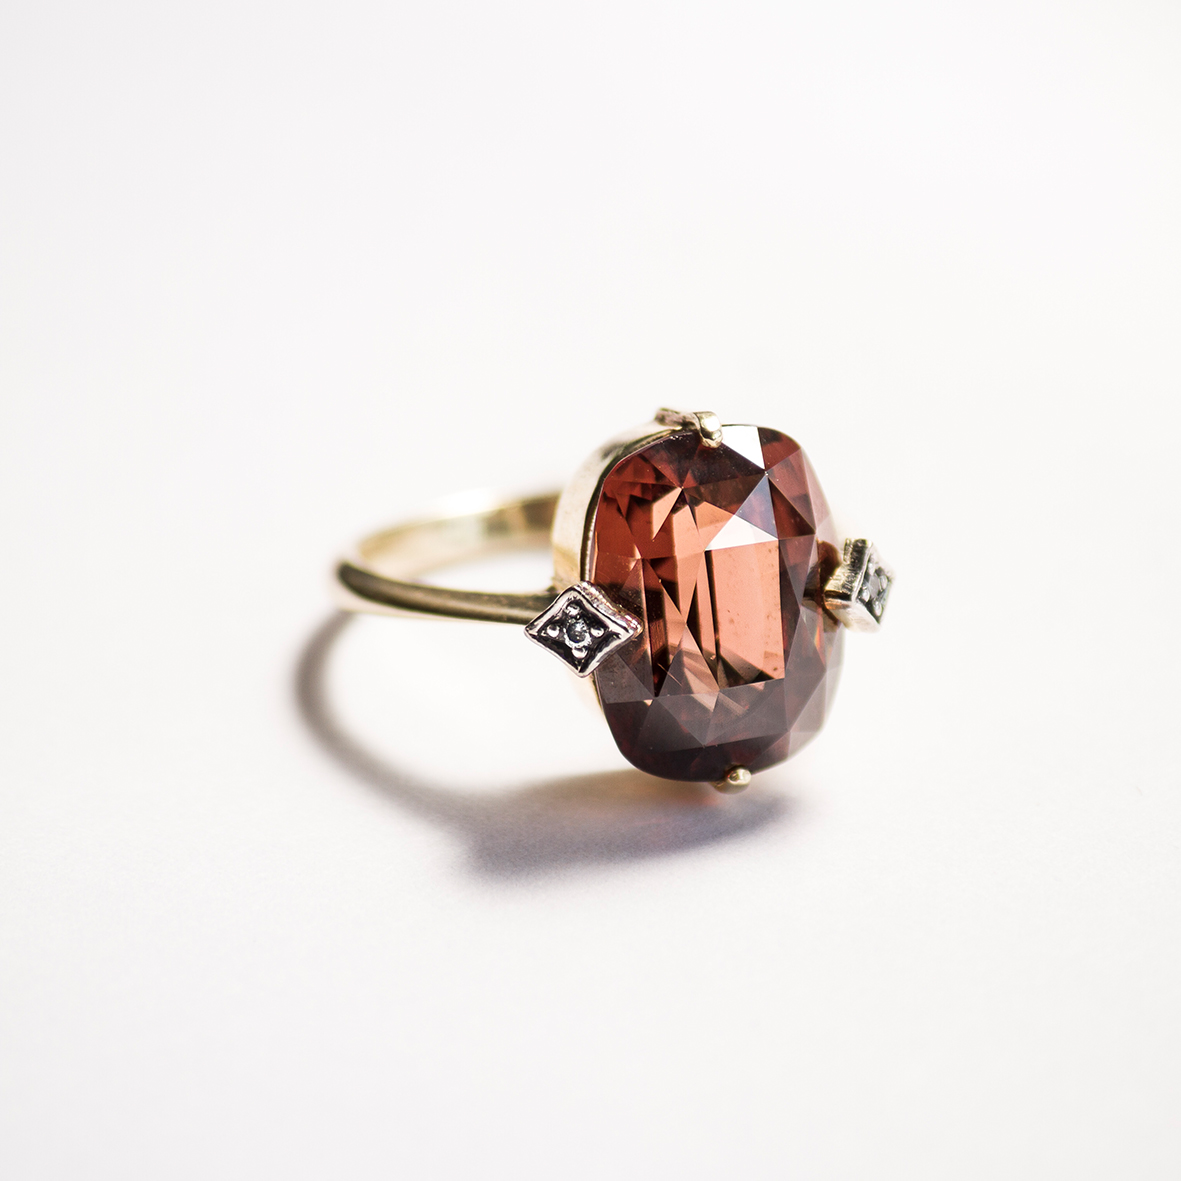 3. OONA_gems of ceylon_principal_red-brown zircon ring